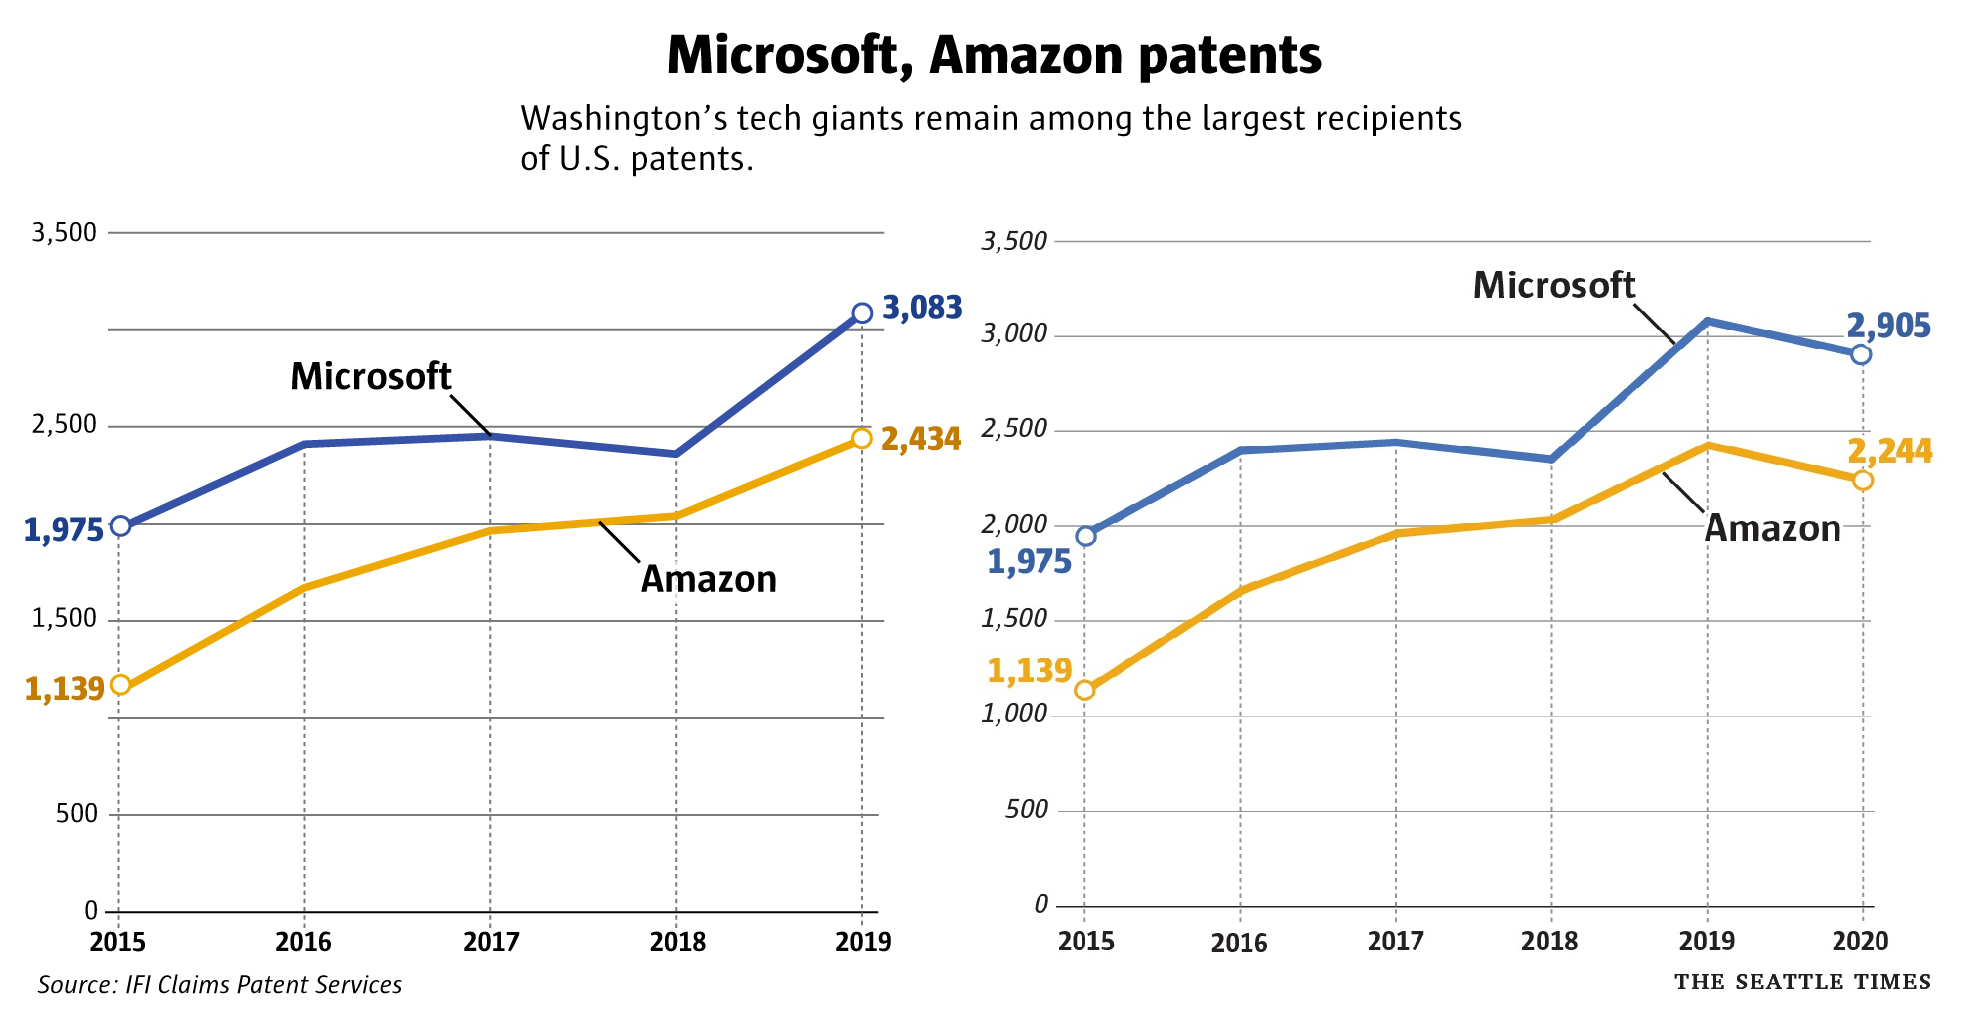 Microsoft vs Amazon